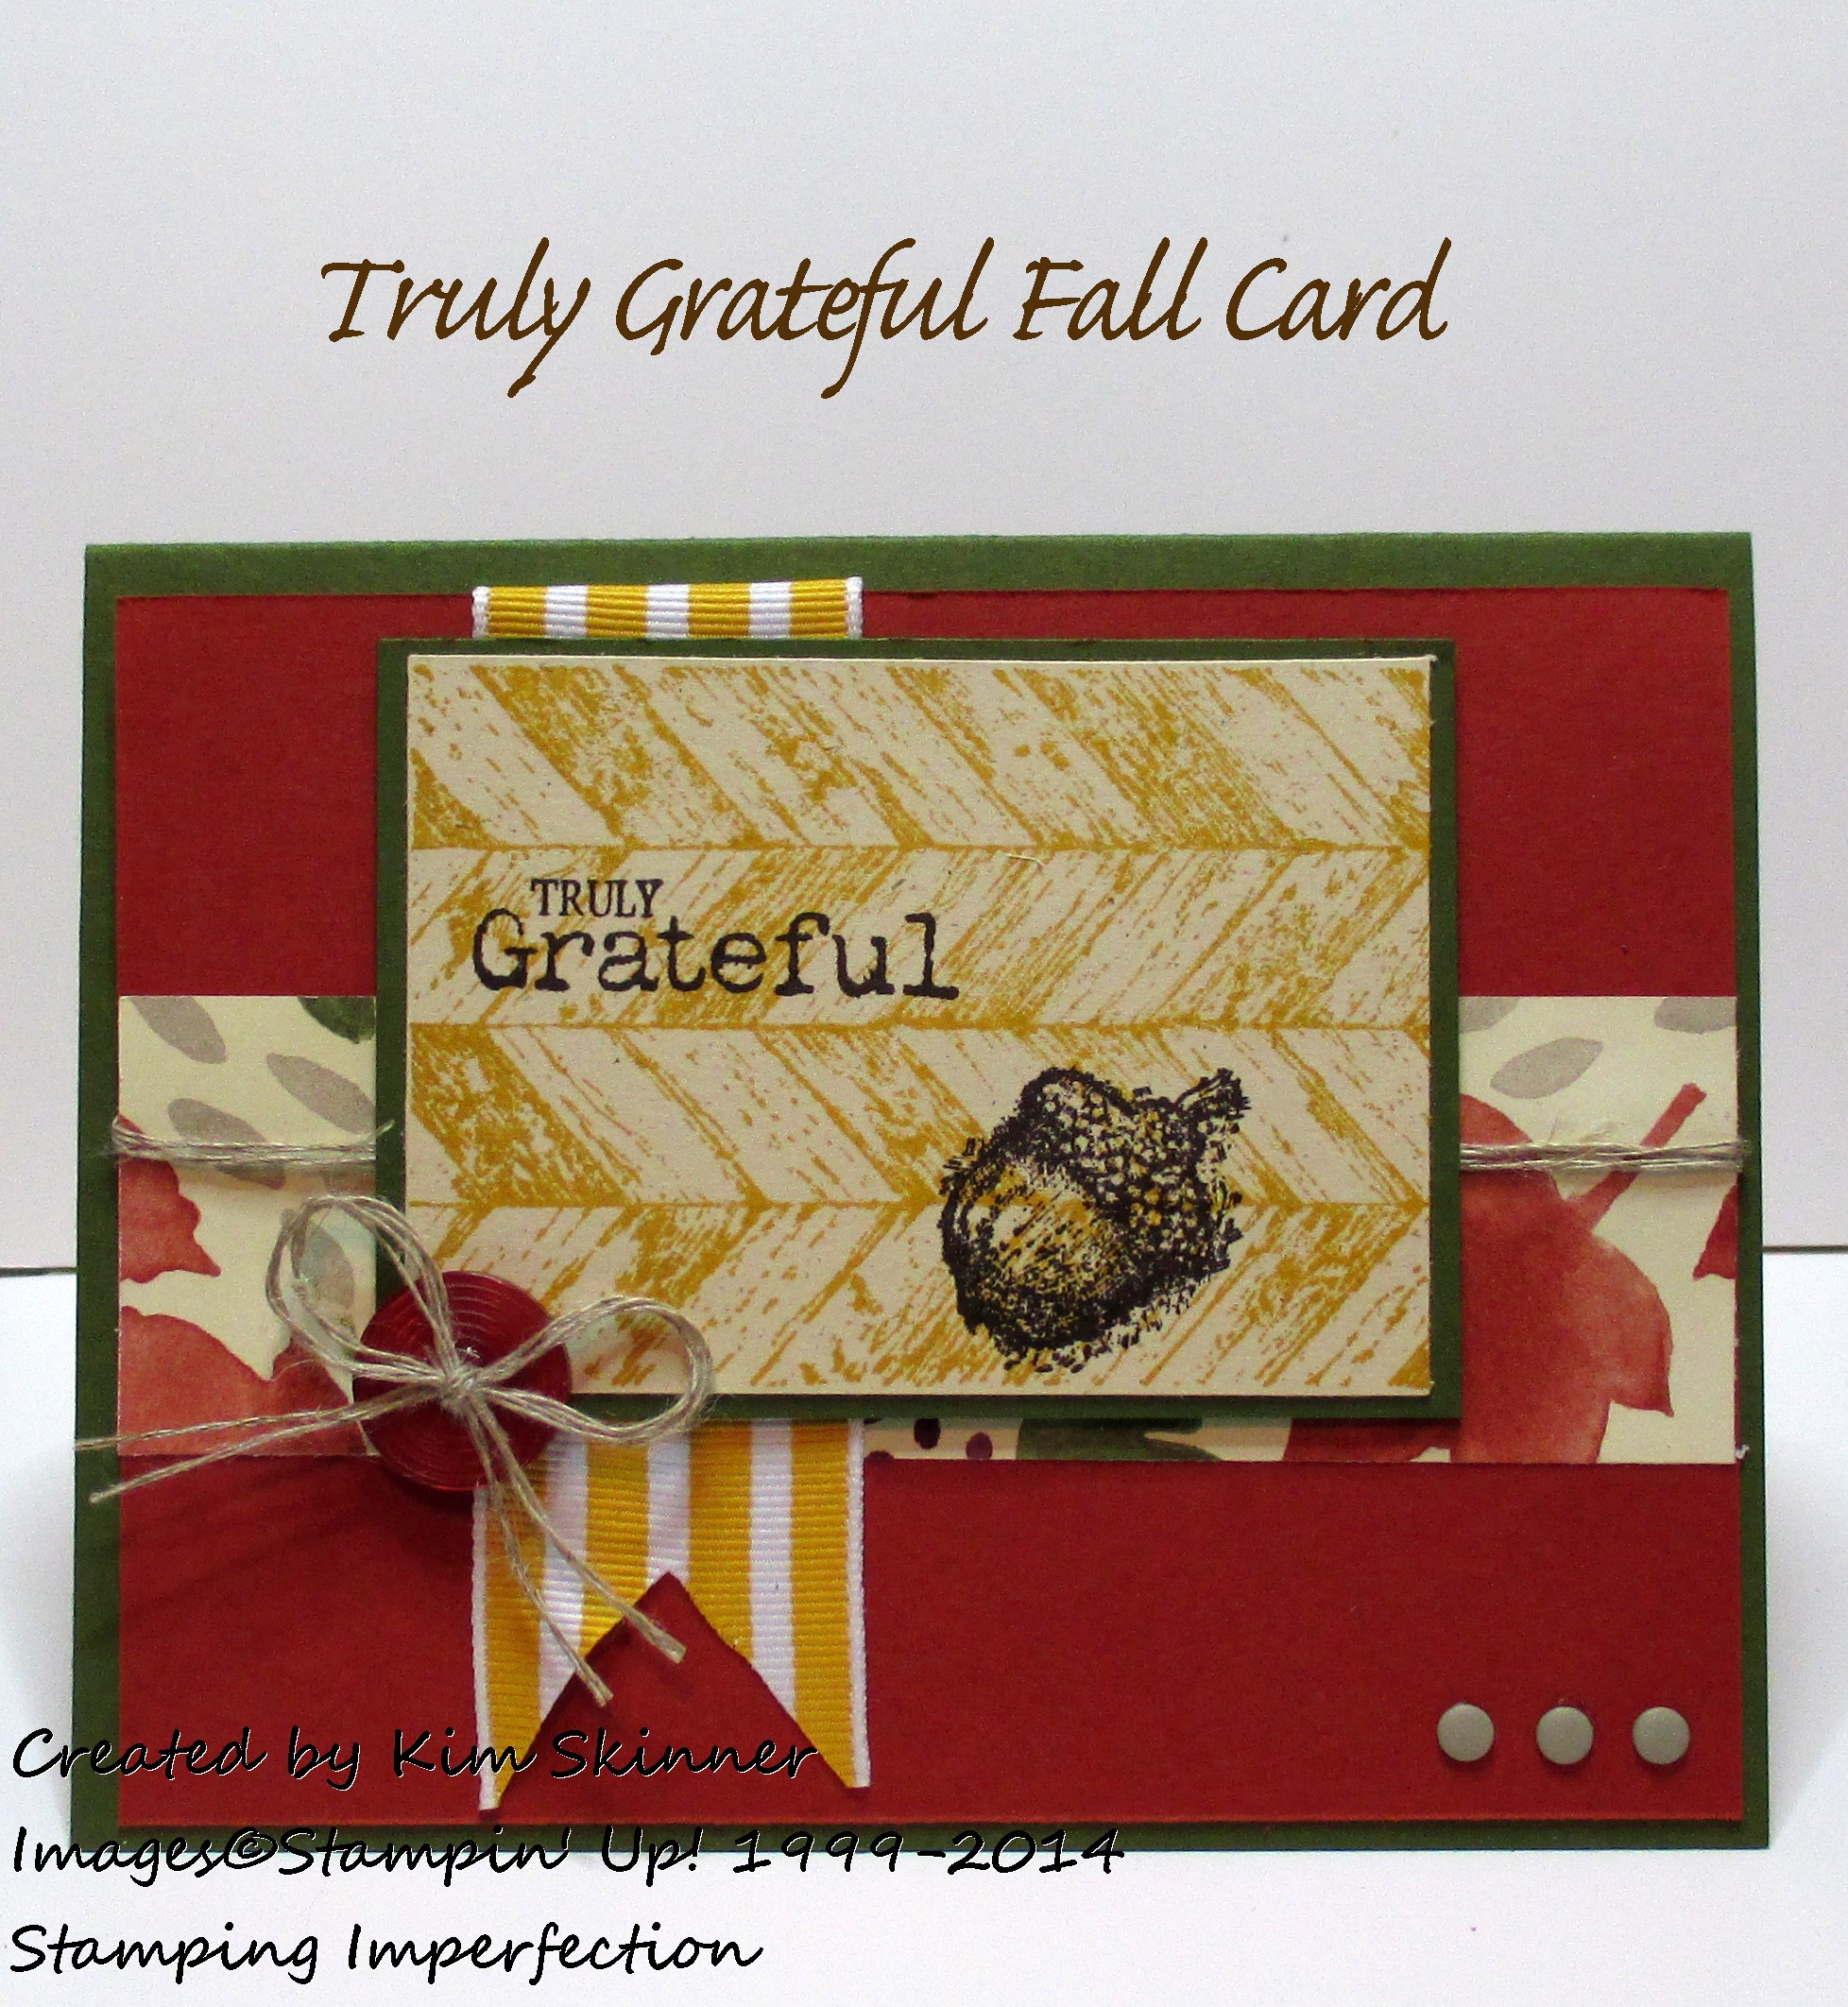 Would You Be Truly Grateful For A Quick Fall Card?